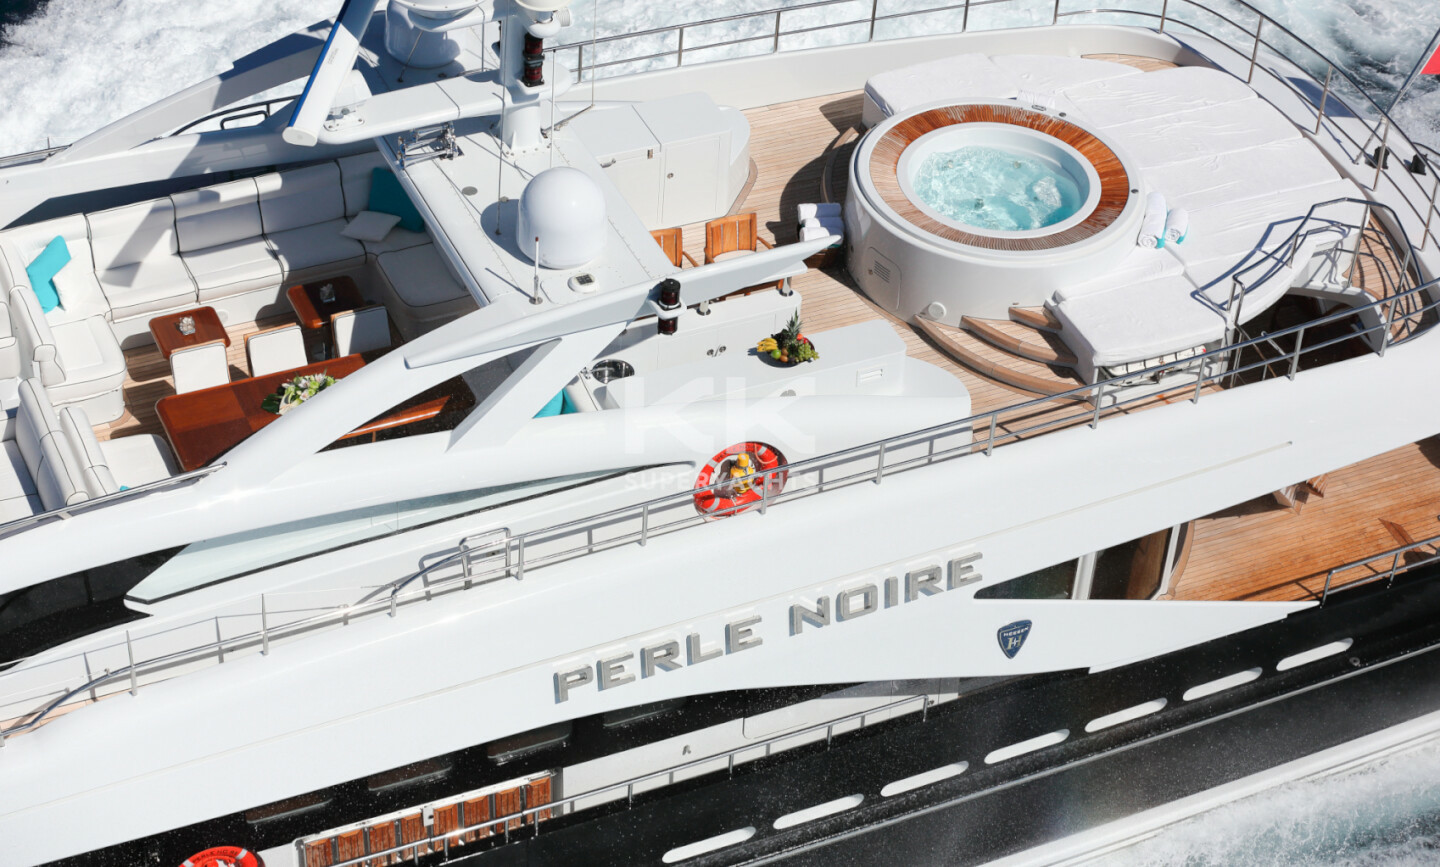 Perle Noire yacht for Sale 9